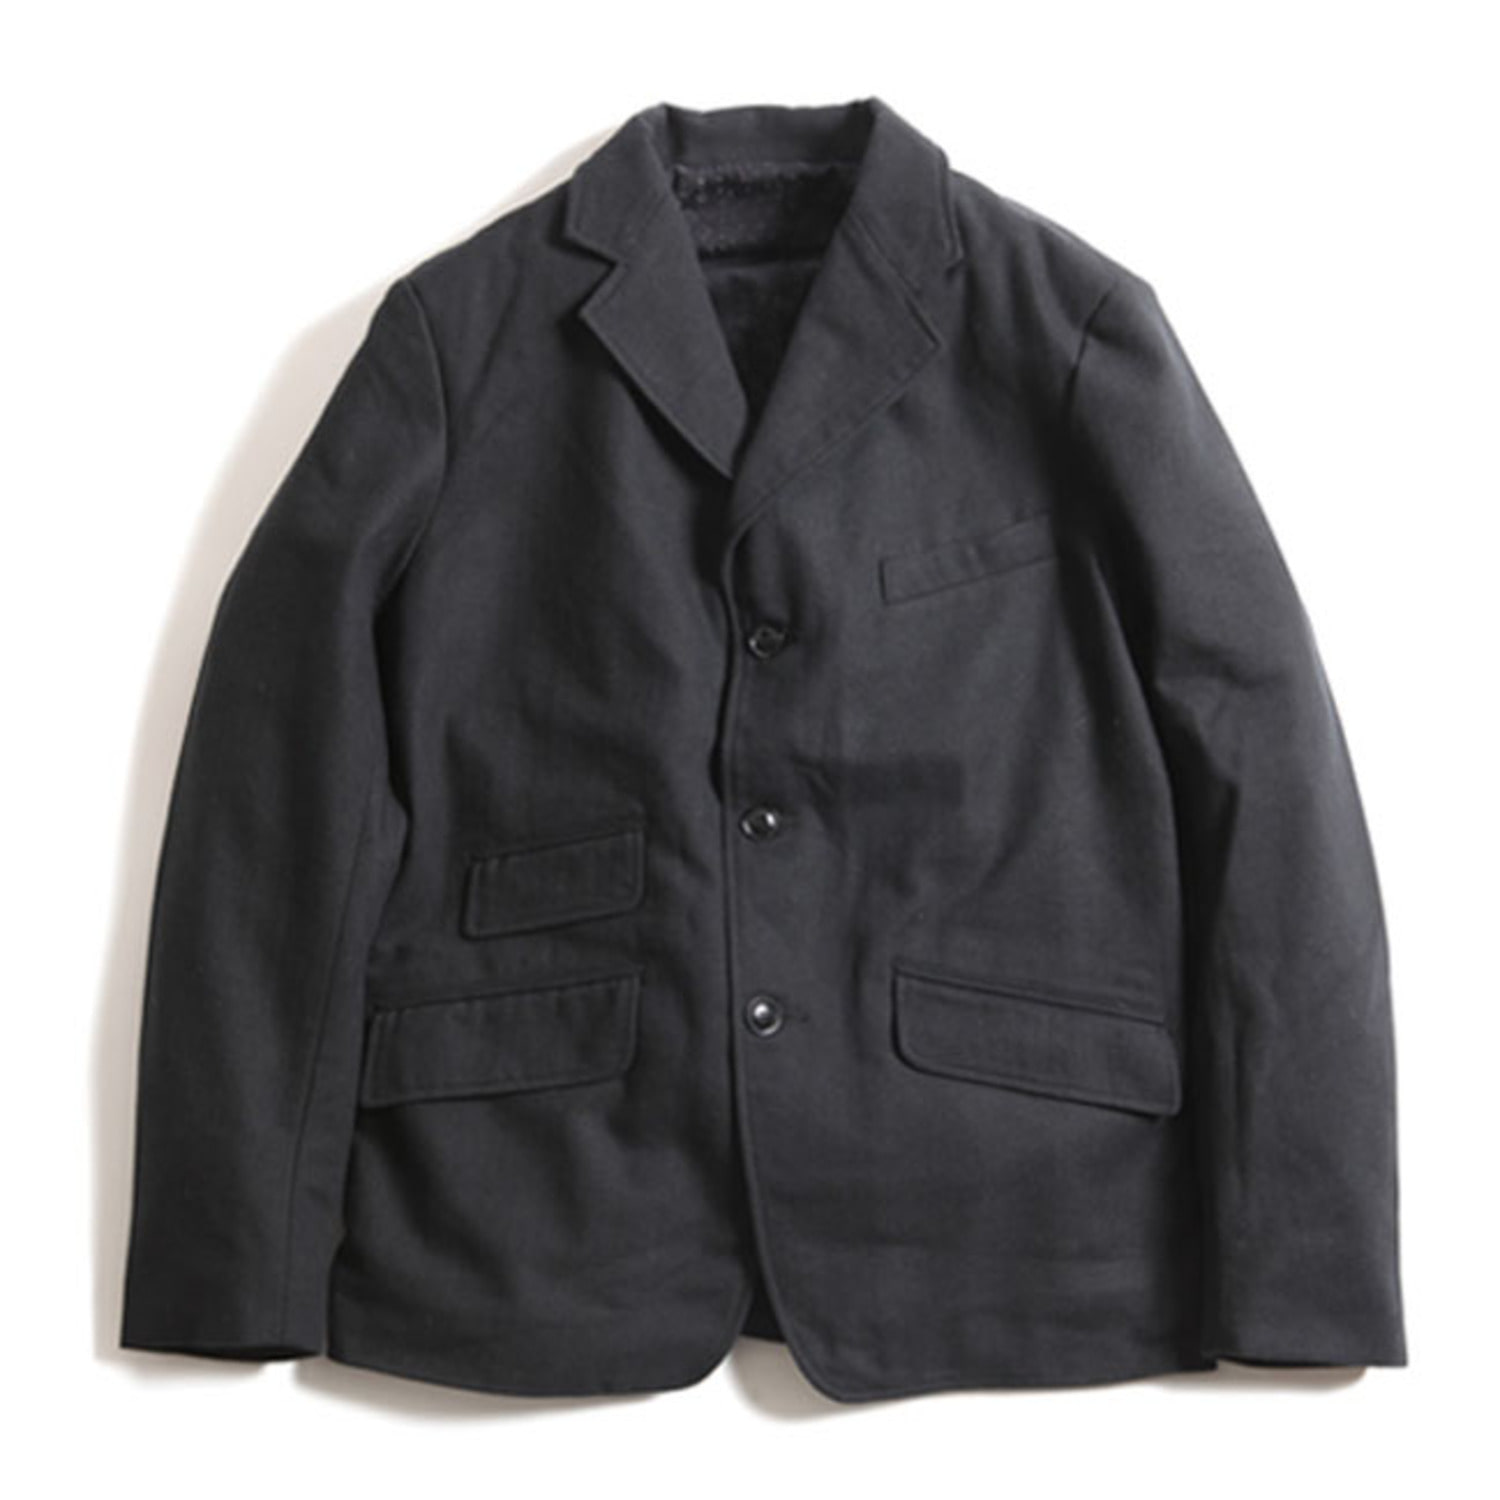 Trophy Clothing Brooklyn Wool Jacket (Black)